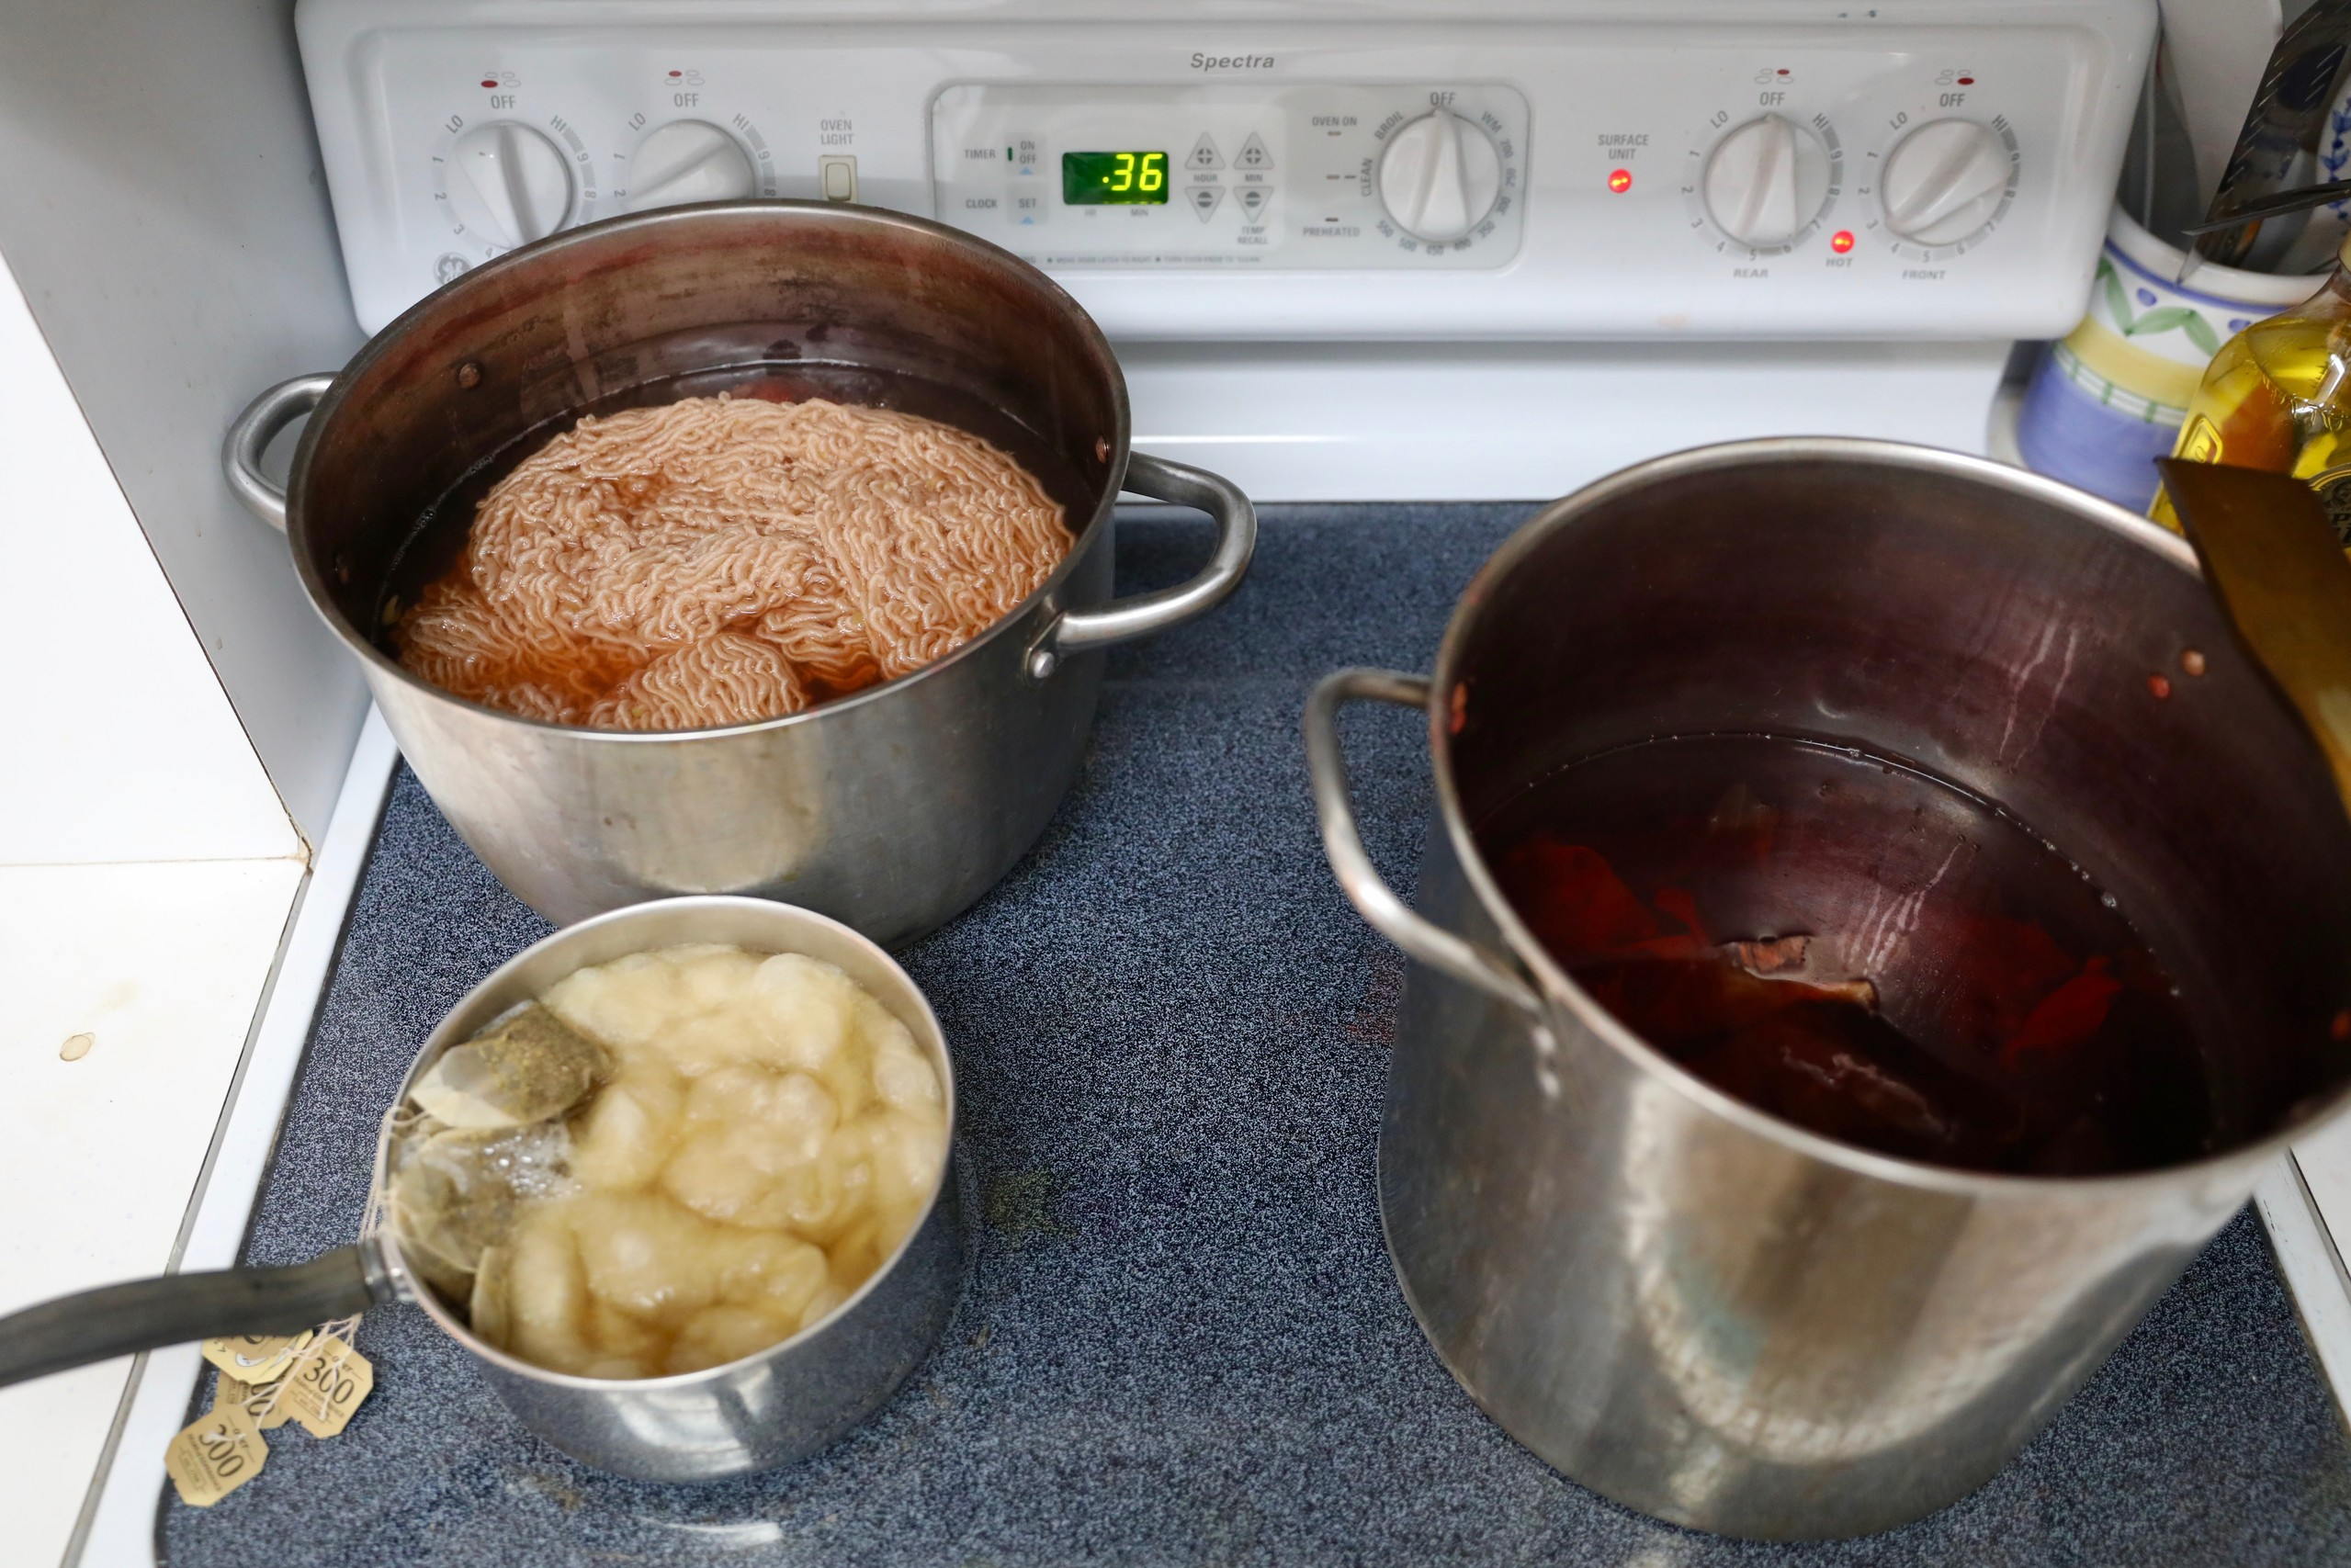 Atop an electric stove, three different sized stainless steel pots are filled with water and yarn or cotton. They are in the process of being dyed by tea bags, berries, and other organic matter.